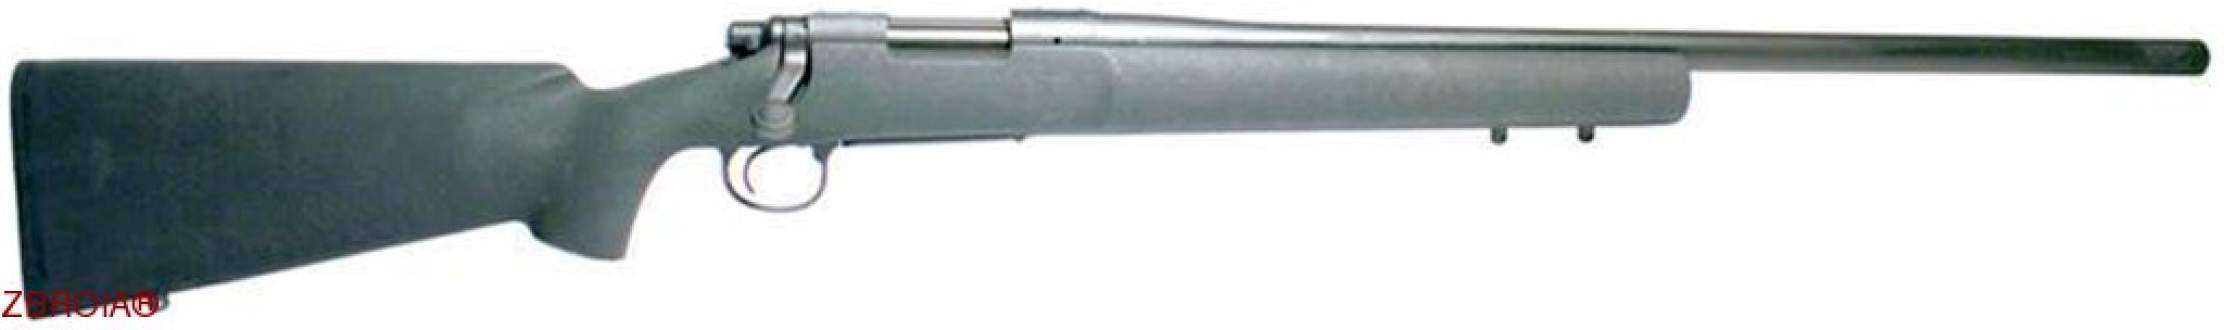 Карабин Remington 700 Police LTR кал. 308 Win